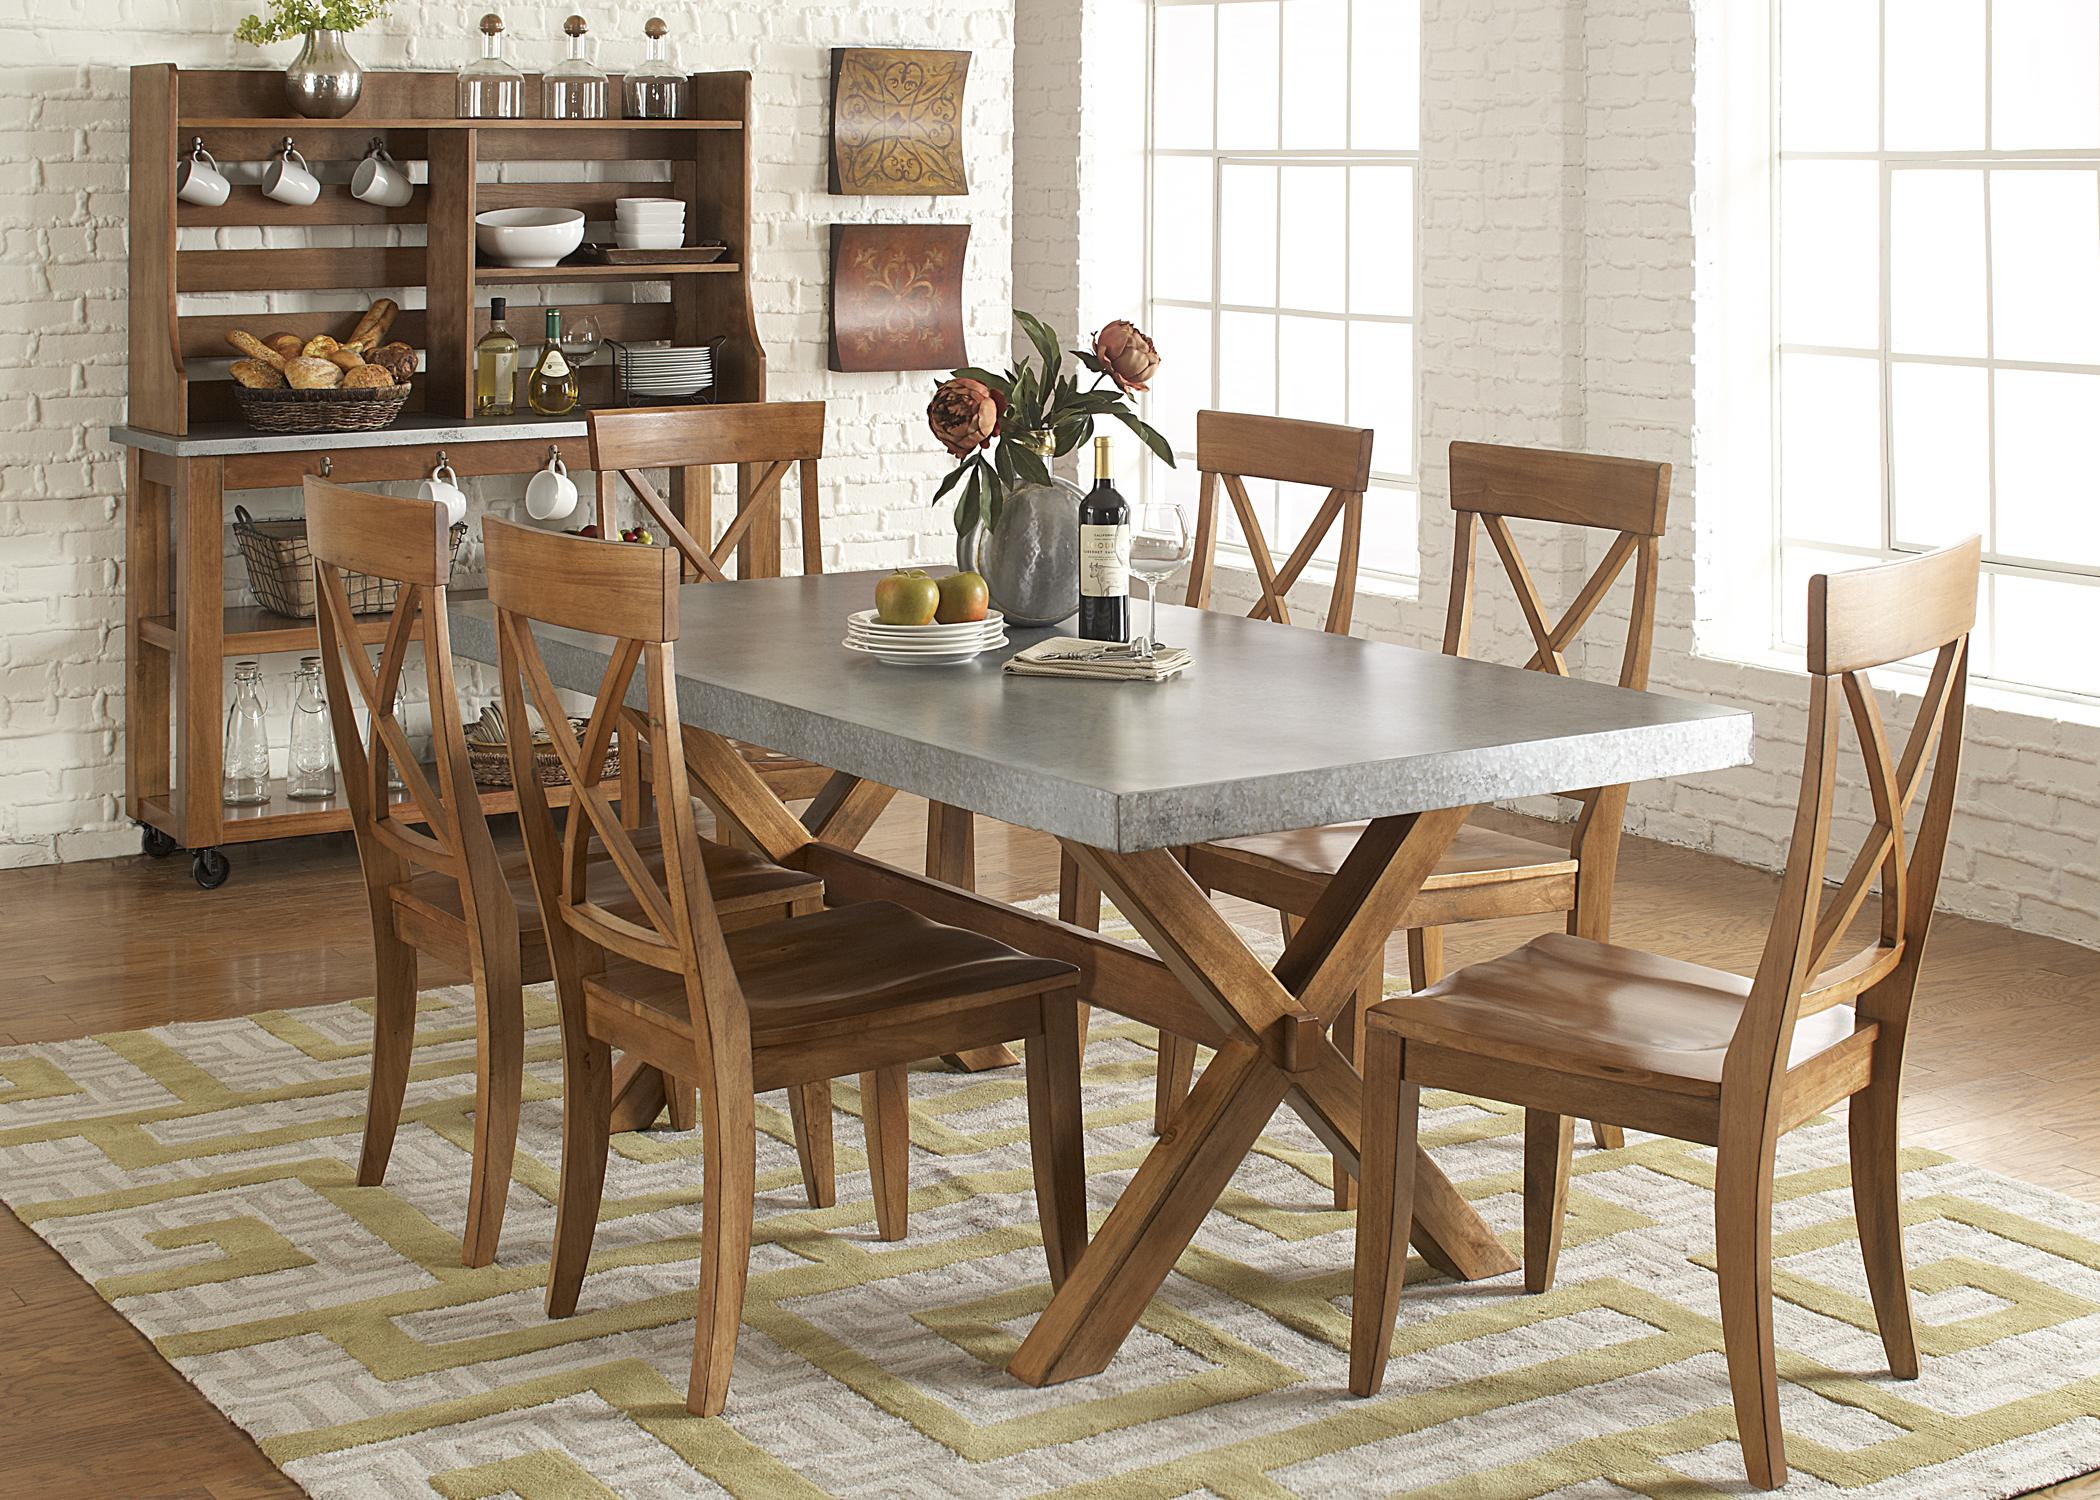 Liberty Furniture Keaton Dining Room Group 1 - Item Number: 119 Dining Room Group 1